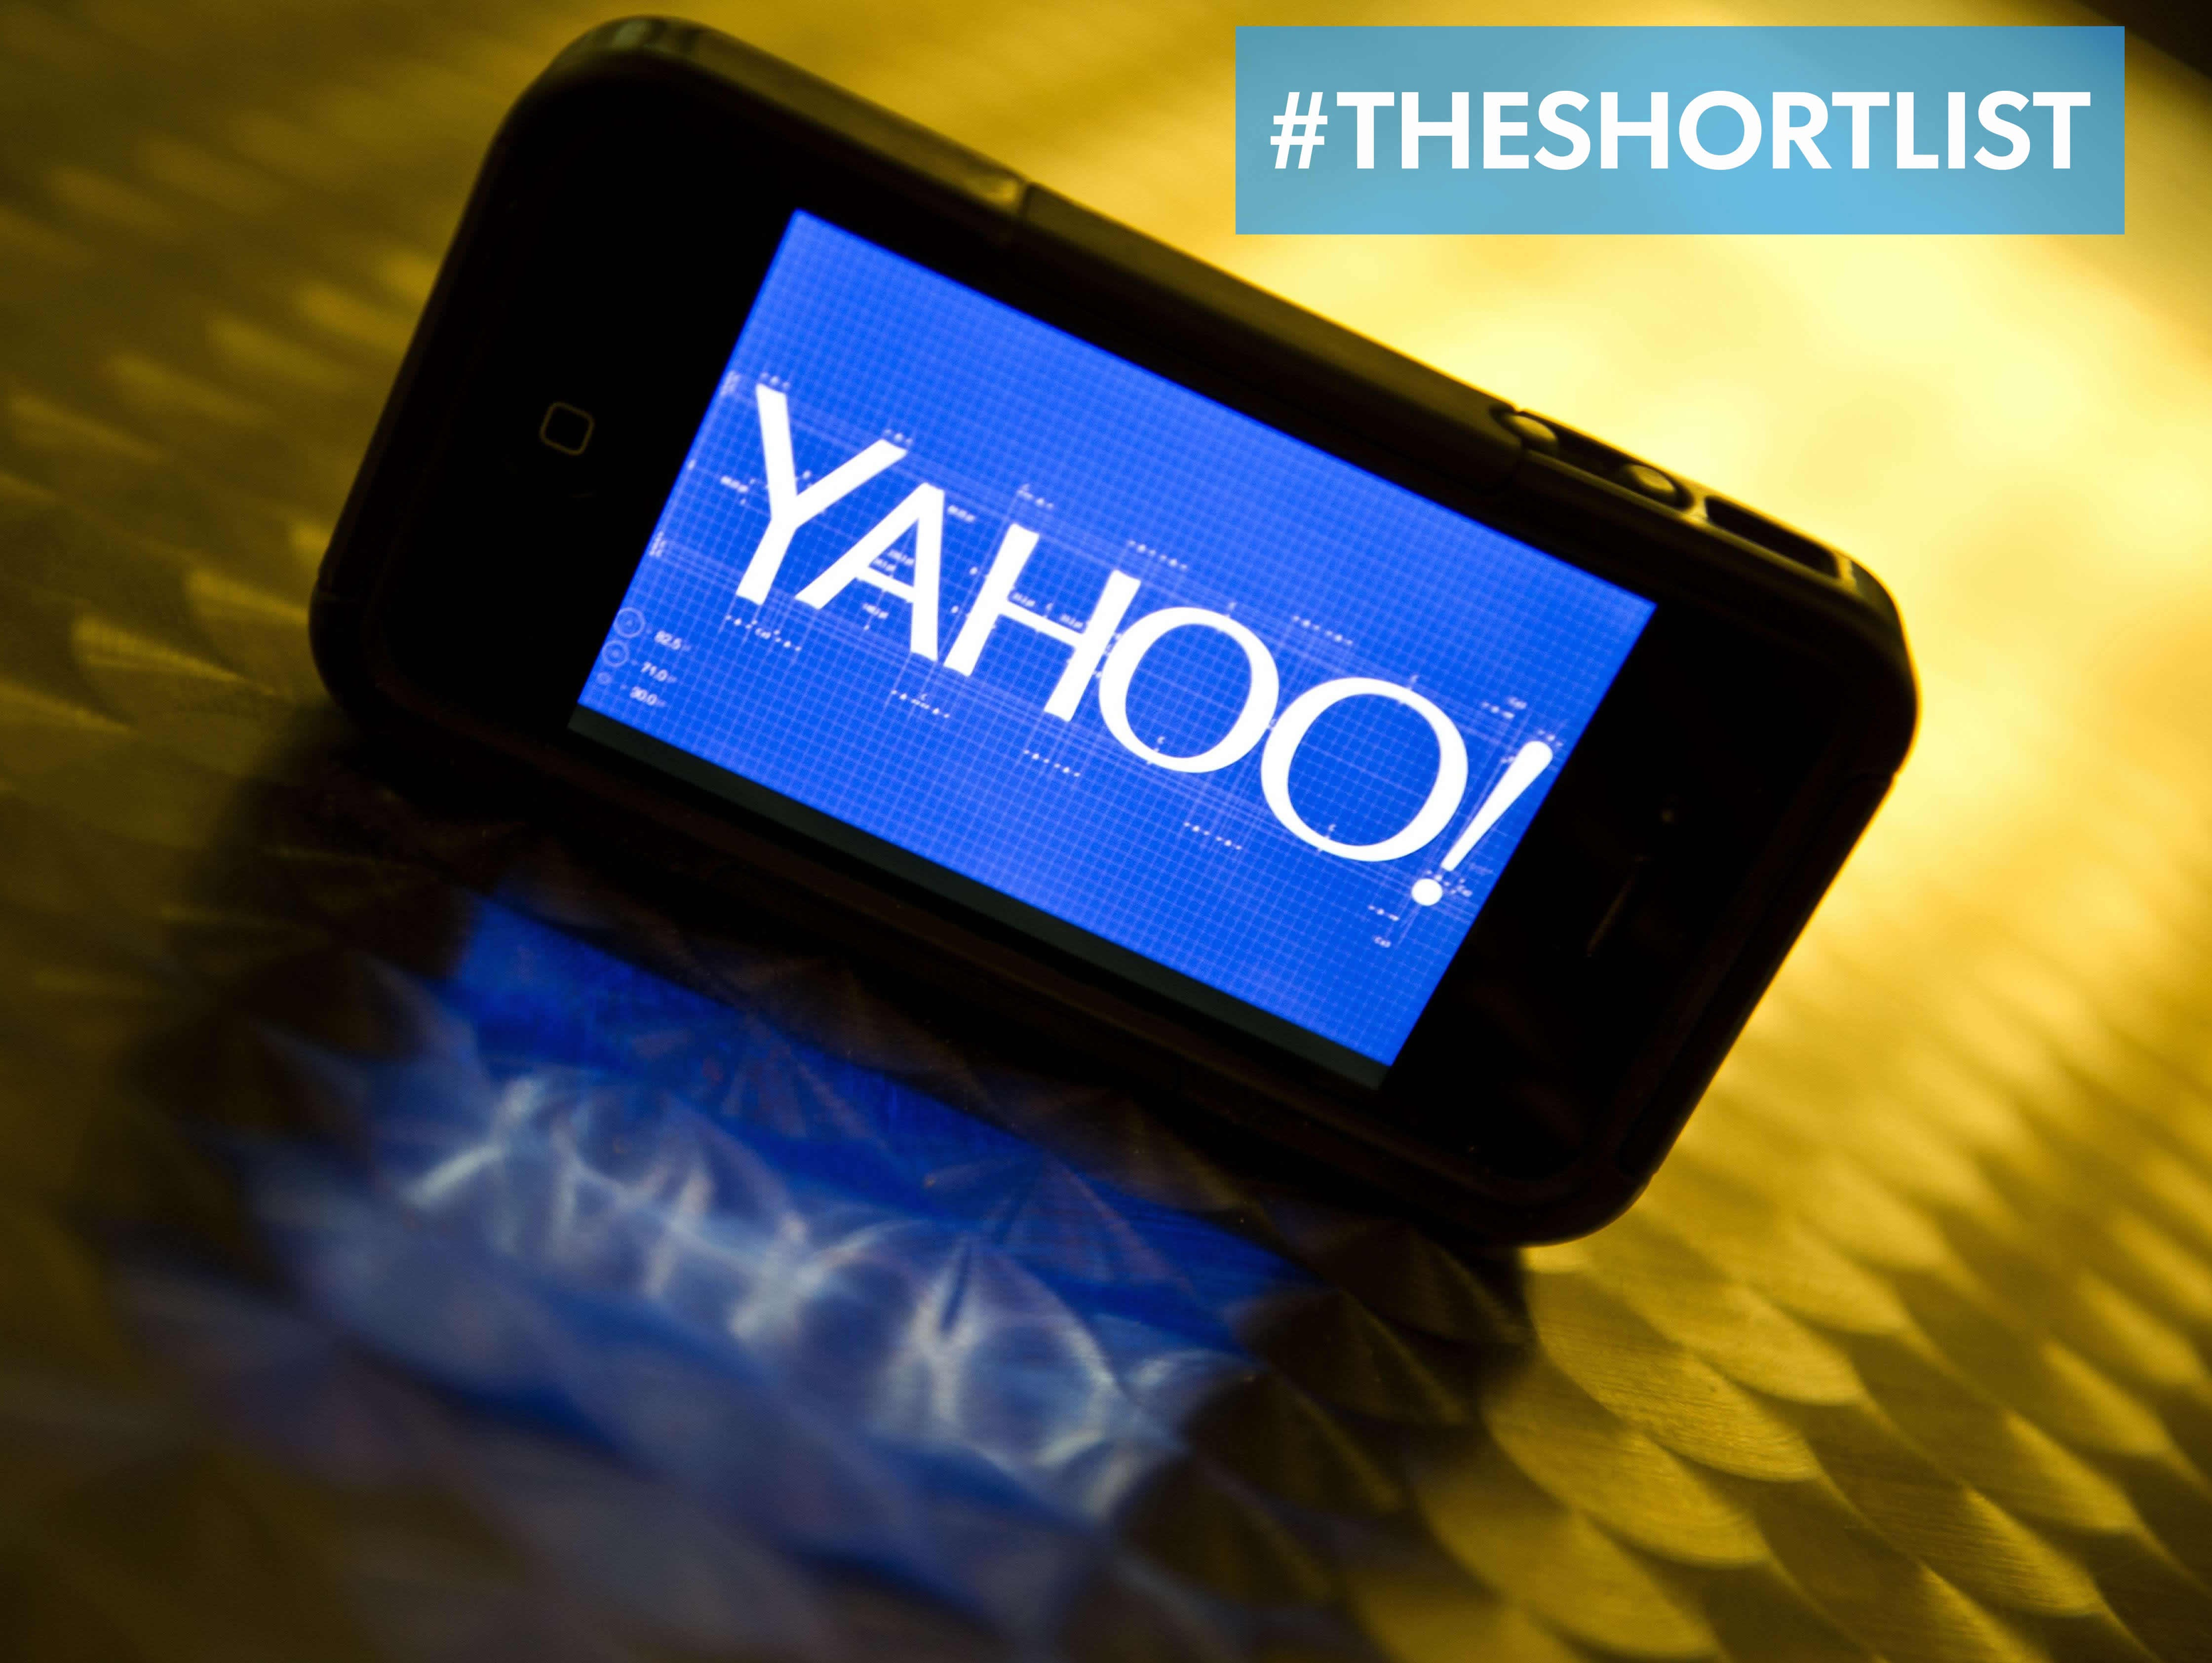 Yahoo's latest numbers are encouraging.